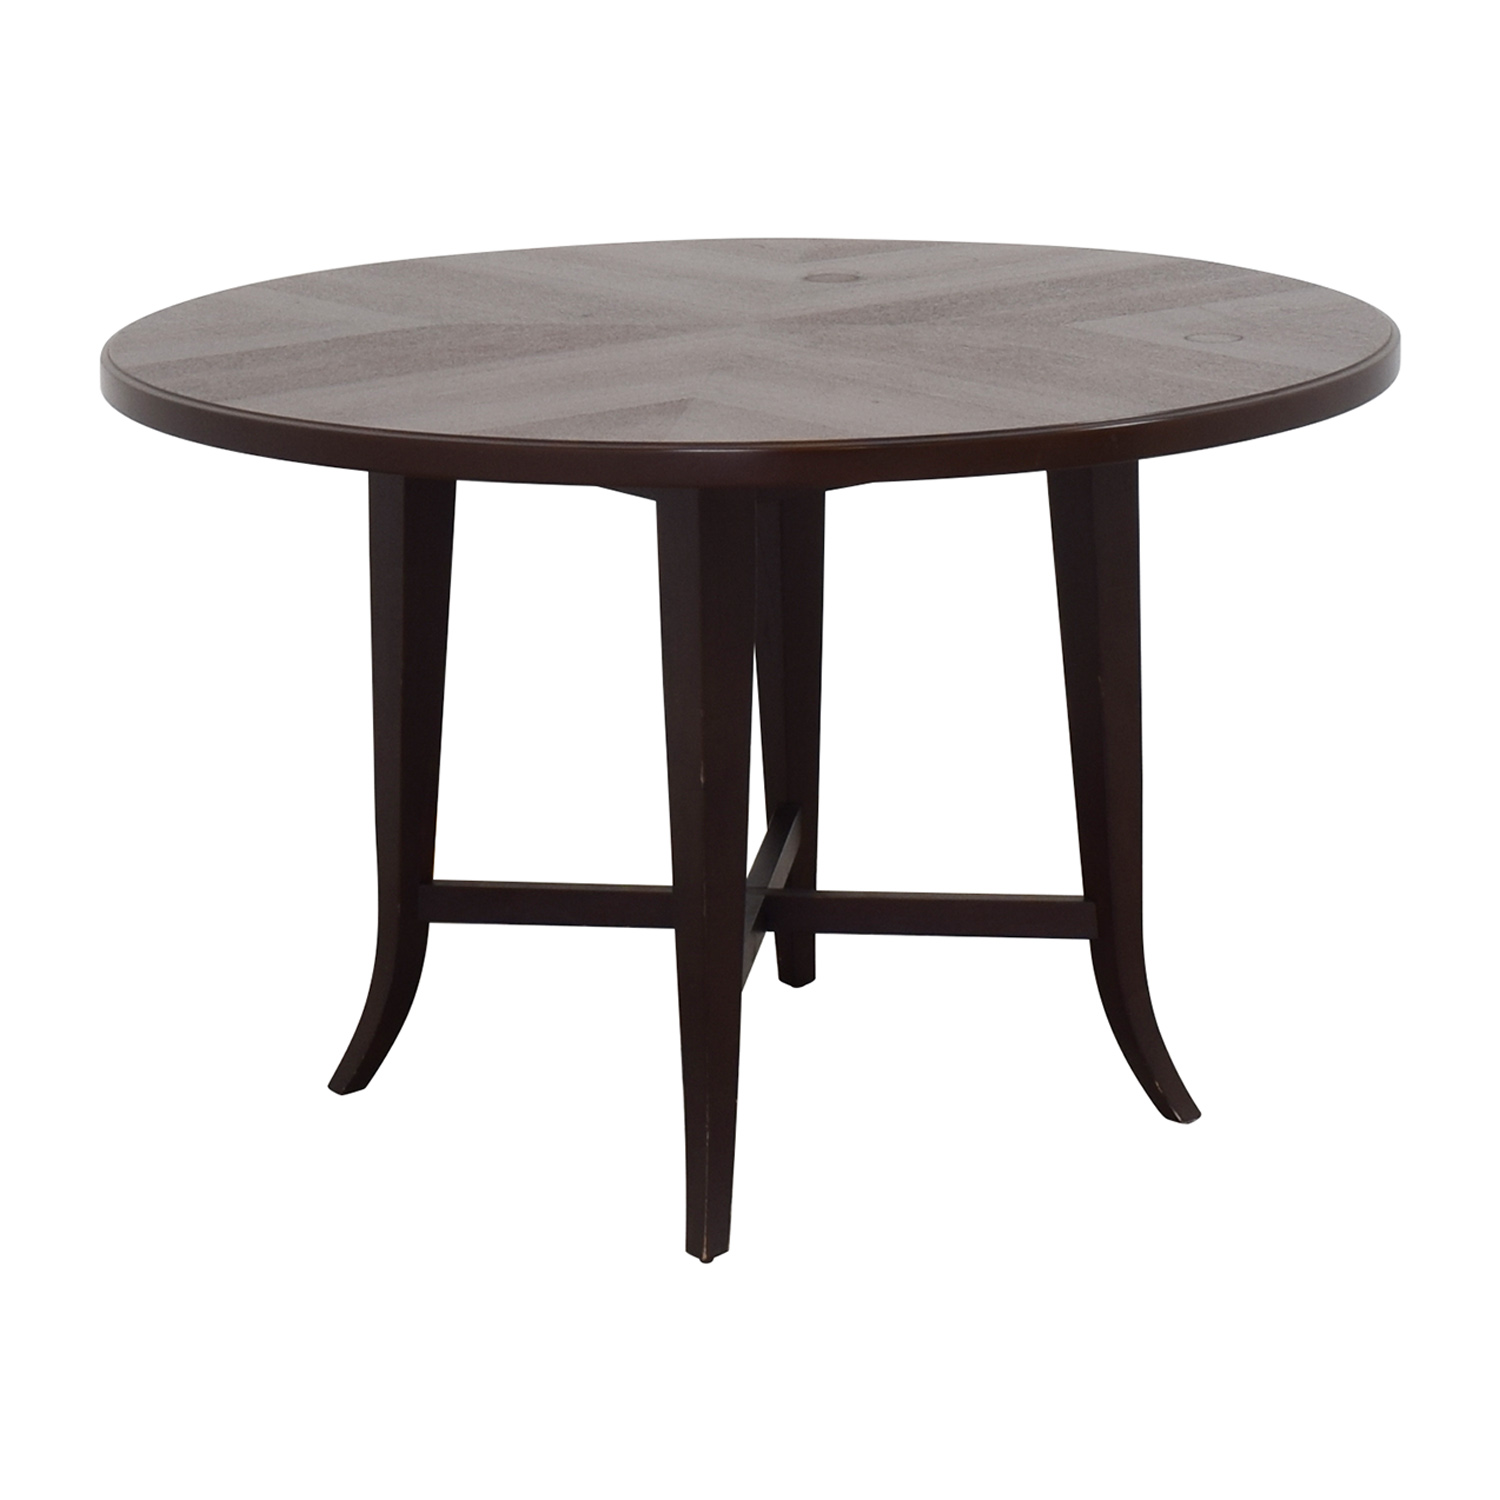 Crate & Barrel Round Dining Table sale